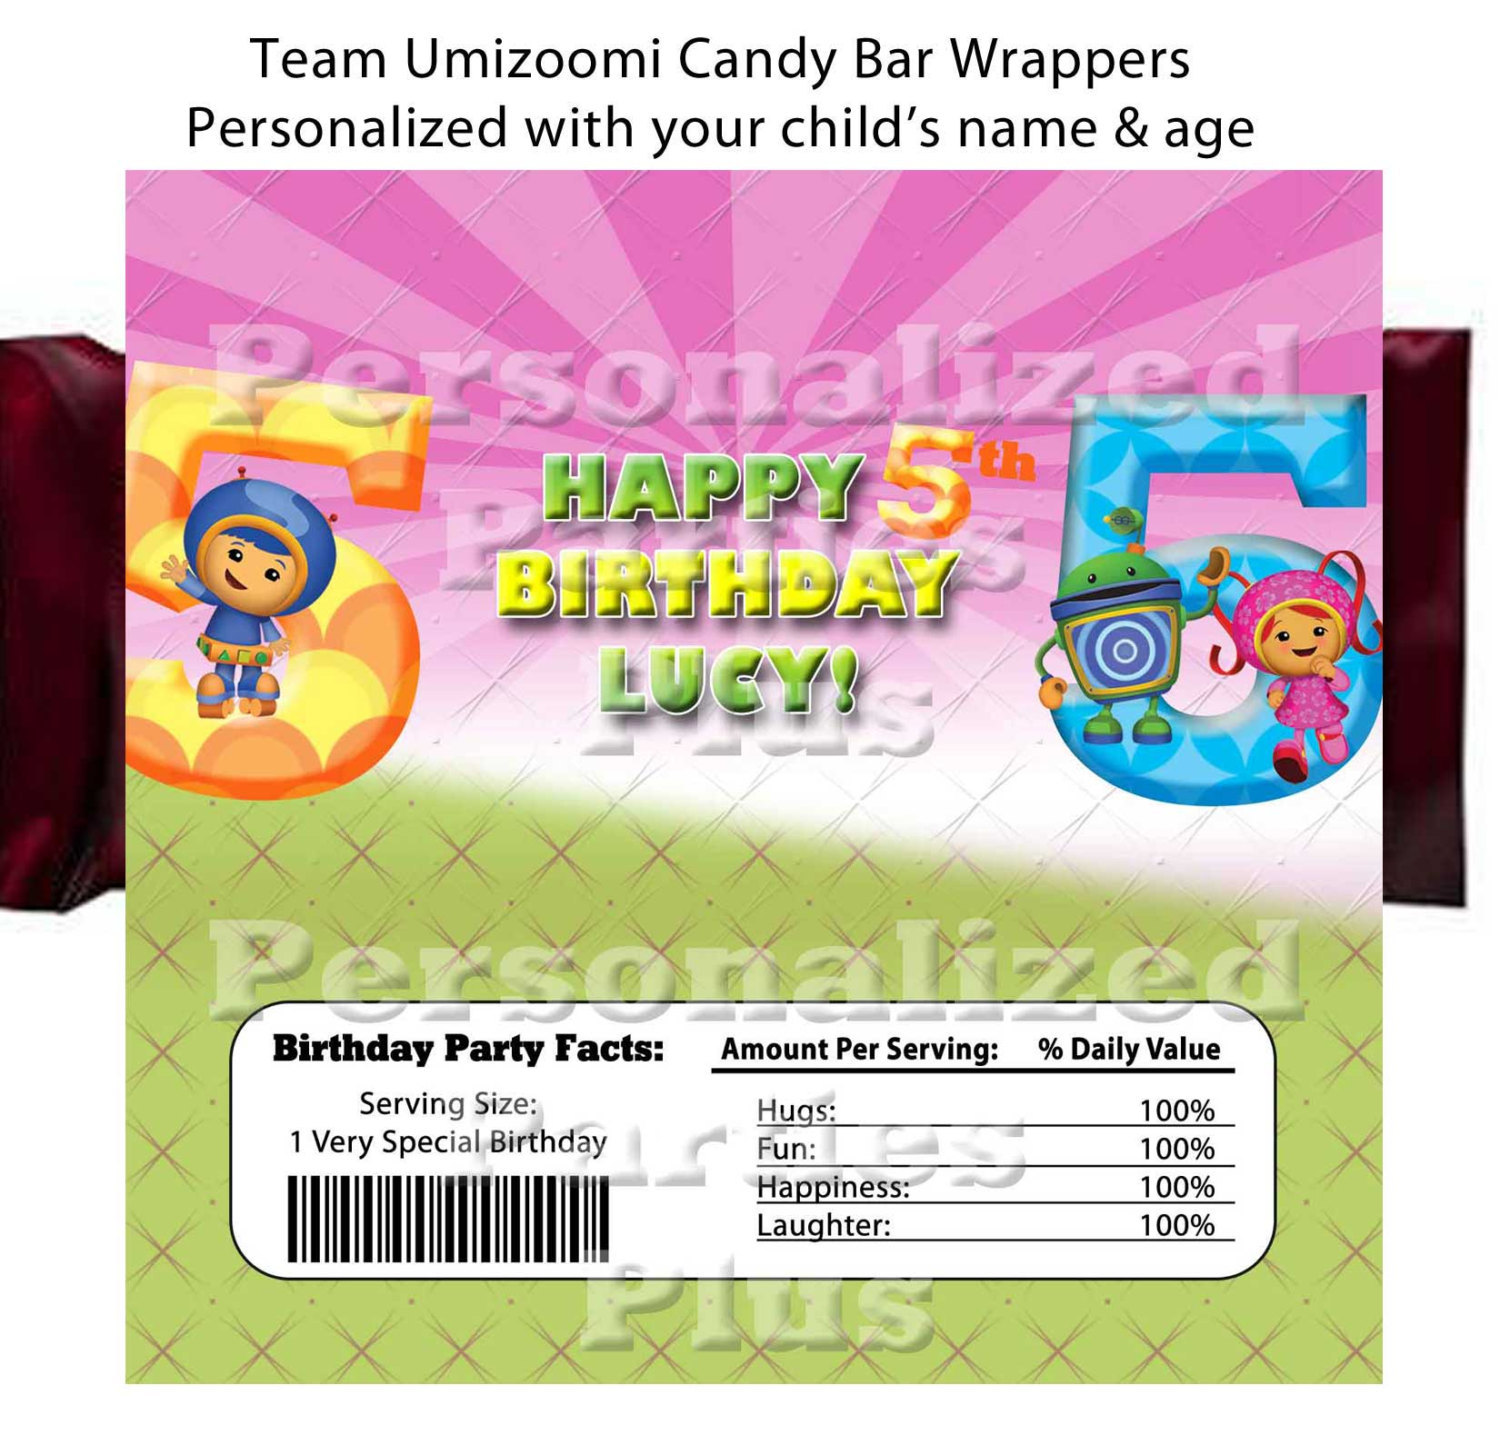 Team Umizoomi Candy Bar Wrappers: Downloadable & Printable